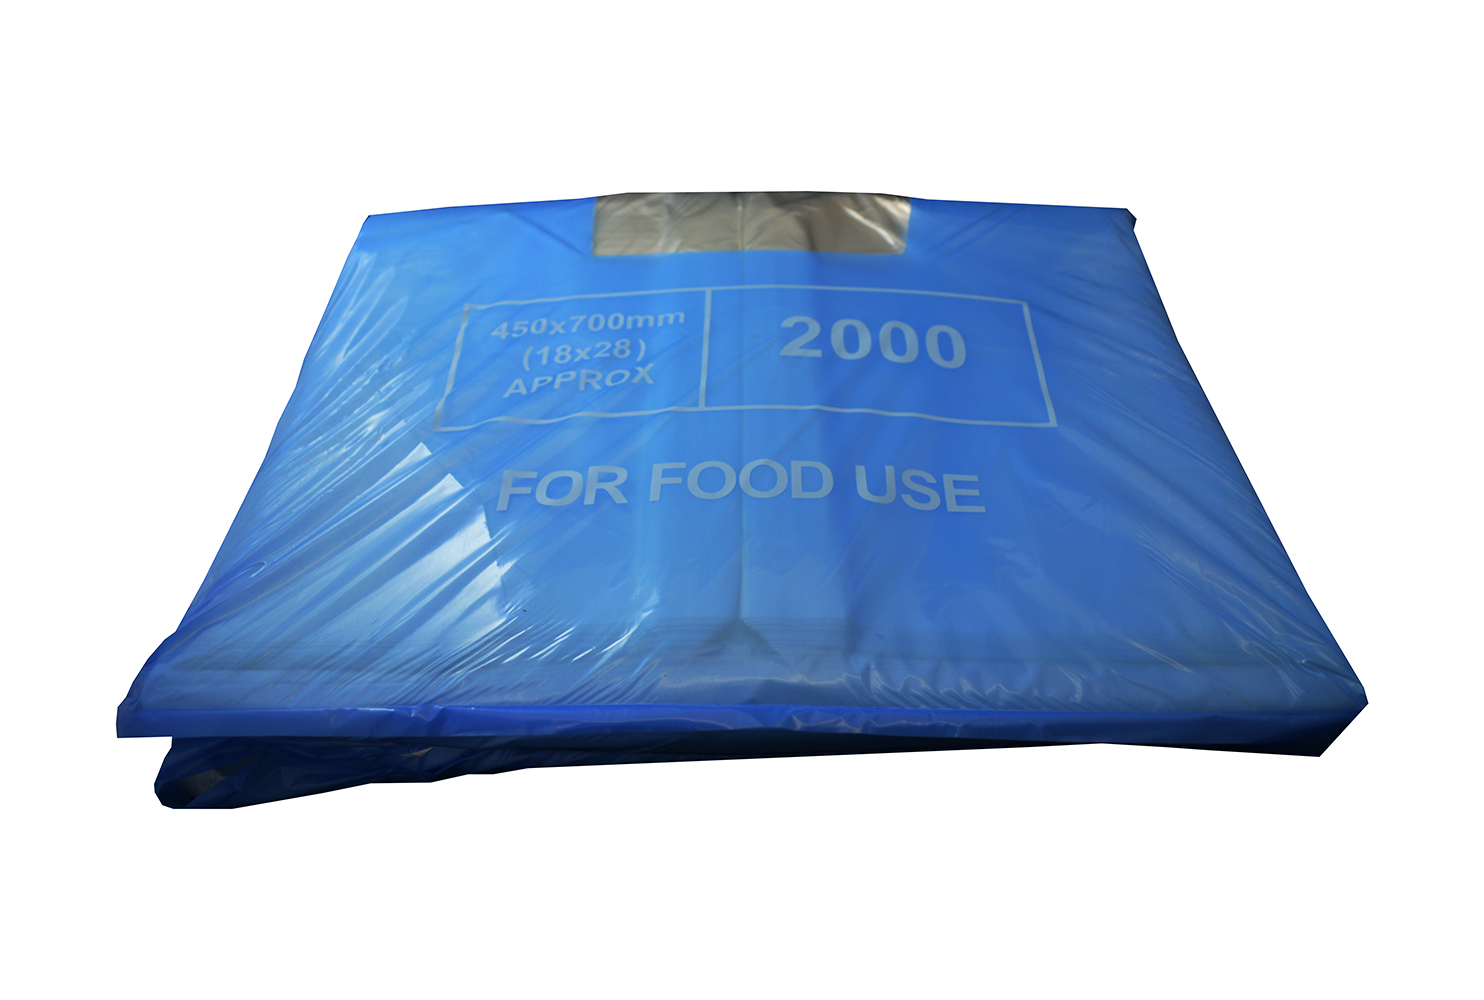 HIGH DENSITY SHEETS 18X28 8MIC